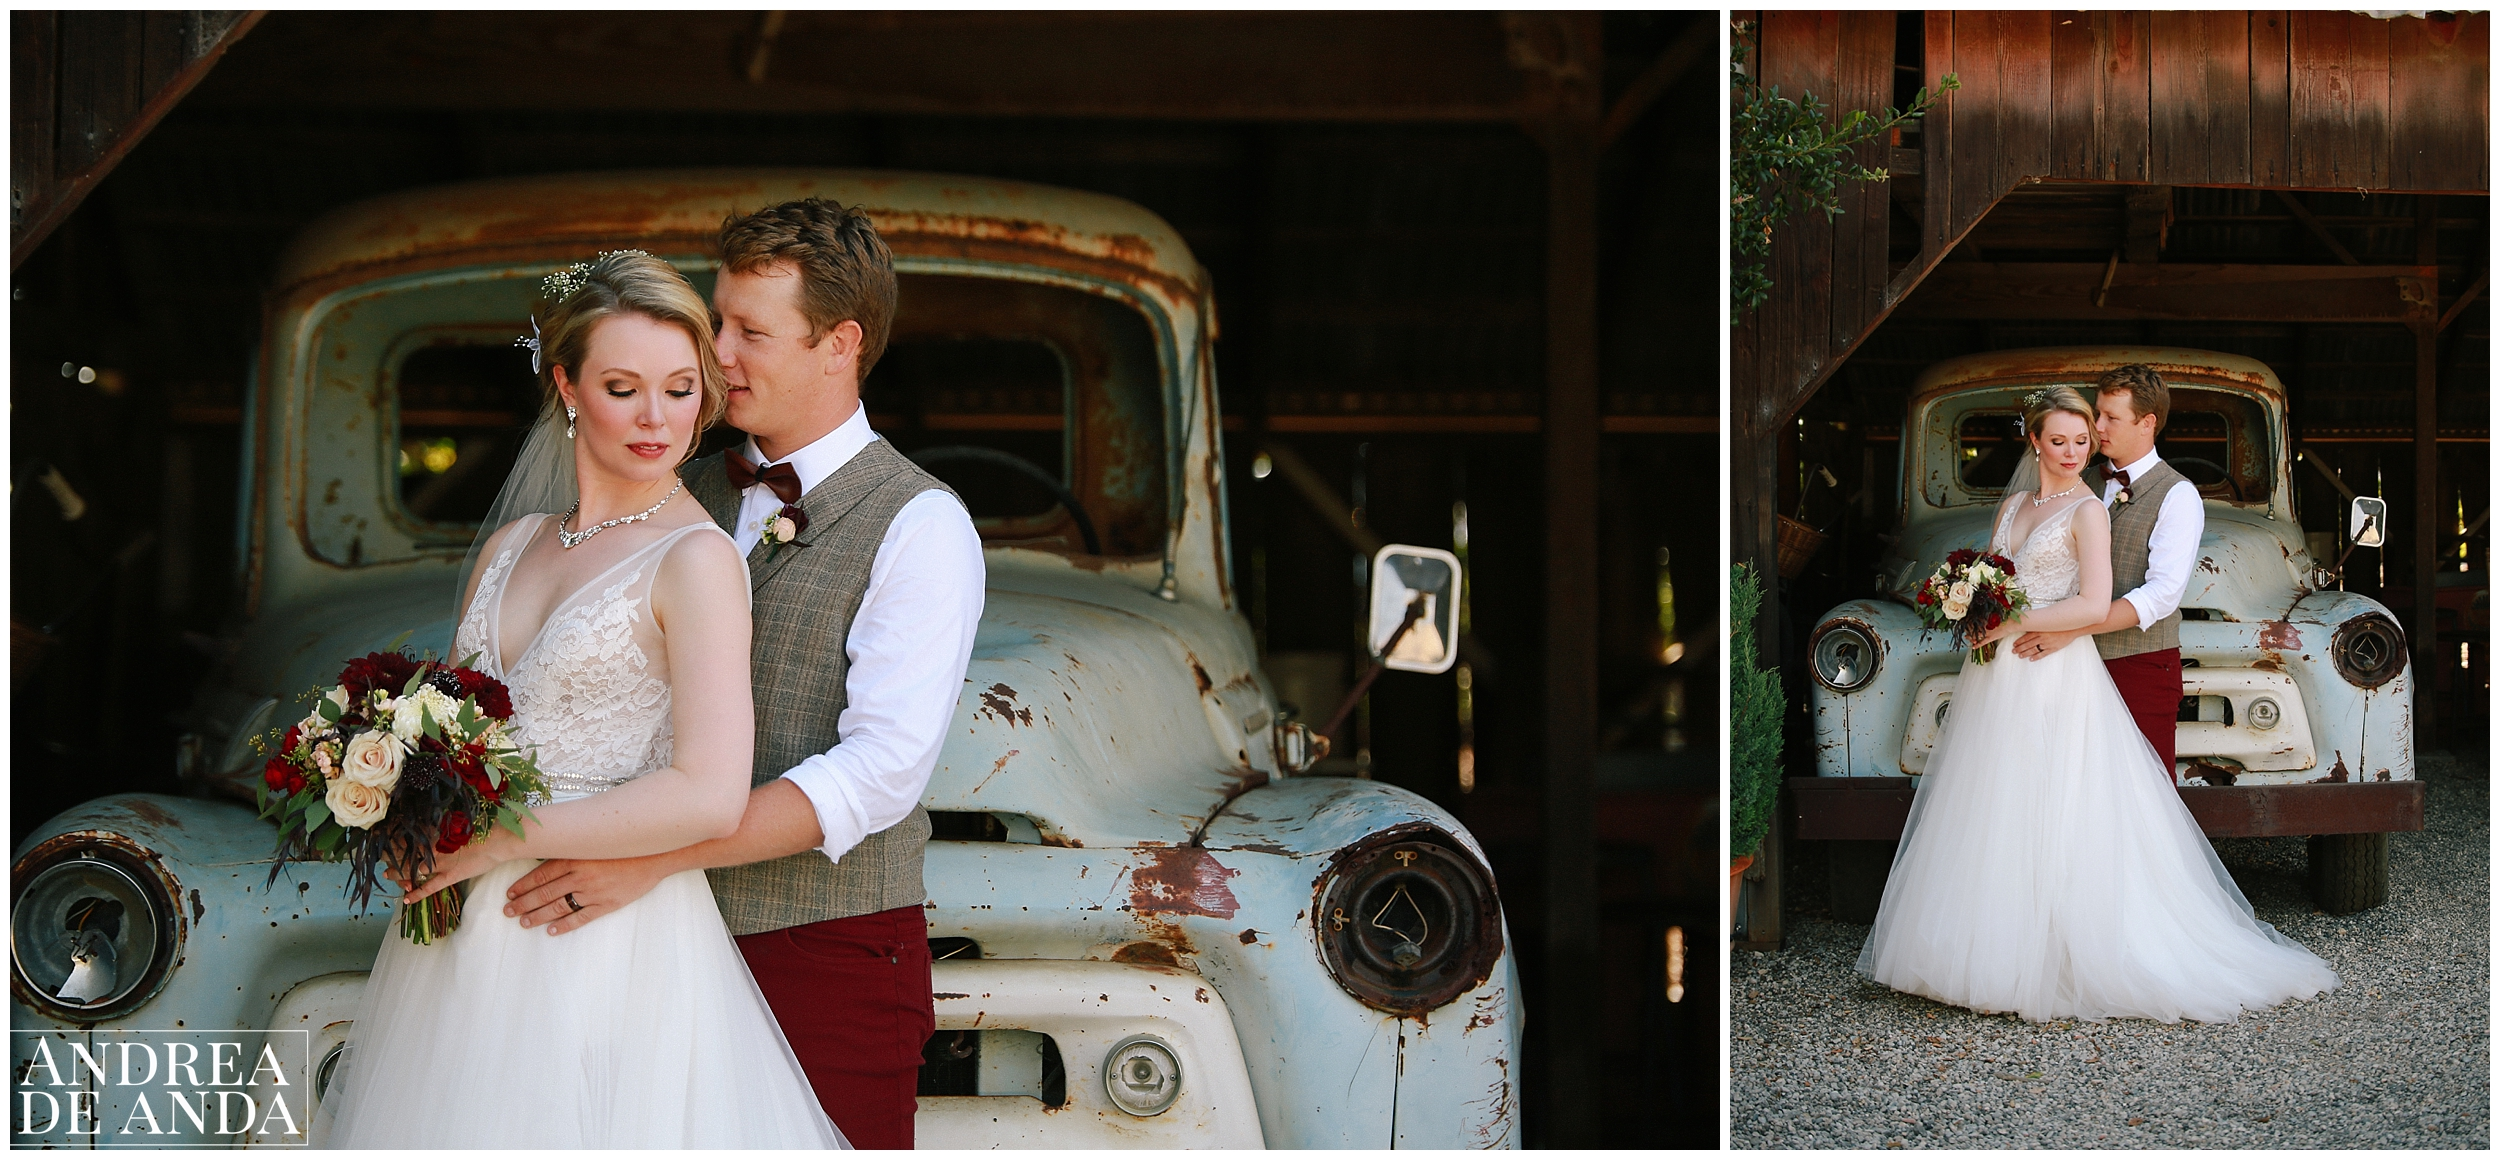 Bride and Groom creative photo session at the shed Dana Powers house and barn